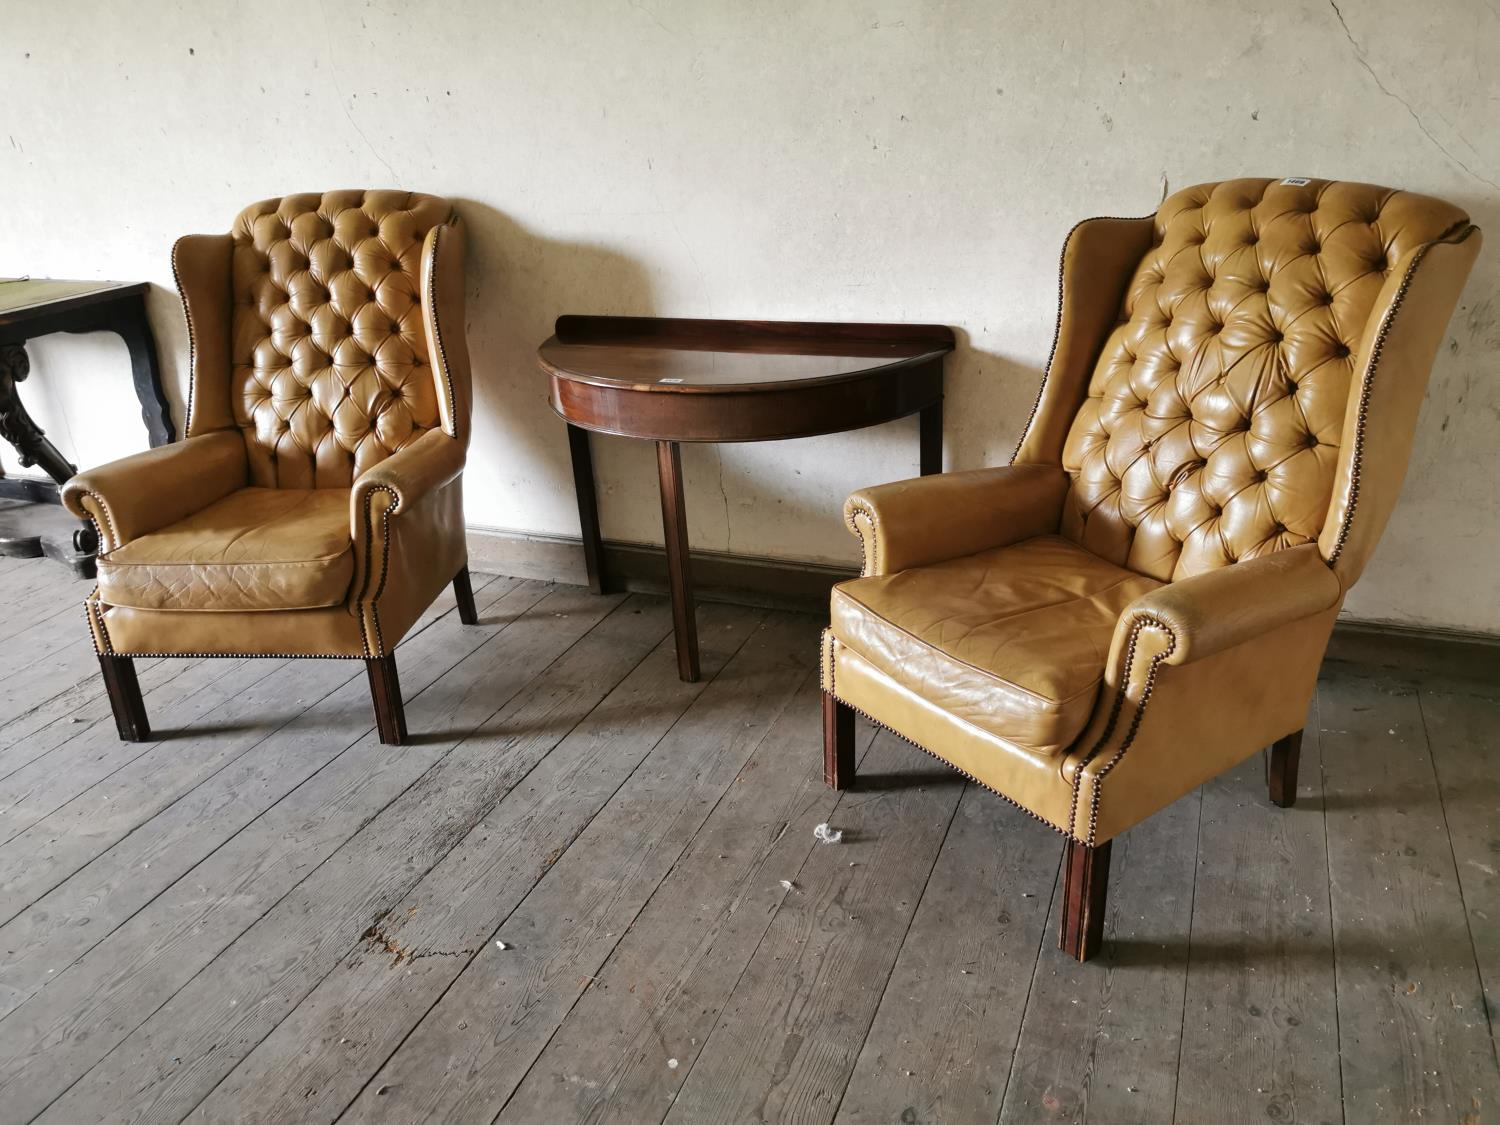 Pair of tanned leather arm chairs.